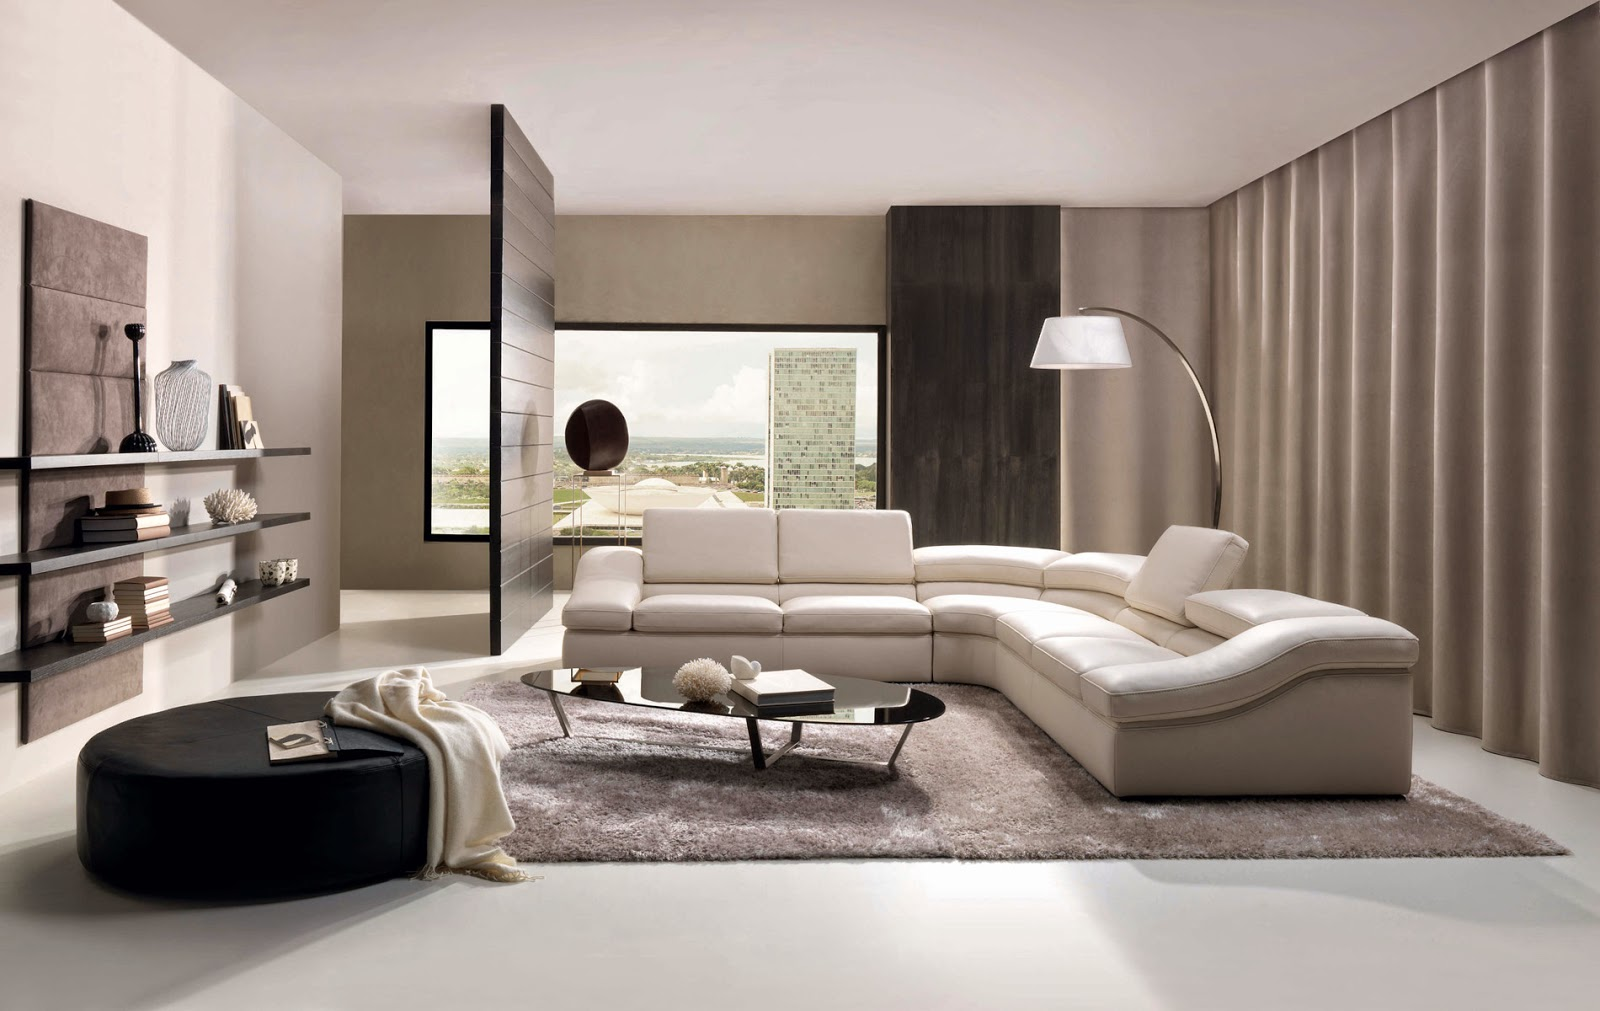 17 interior design minimalist living room | living room ideas